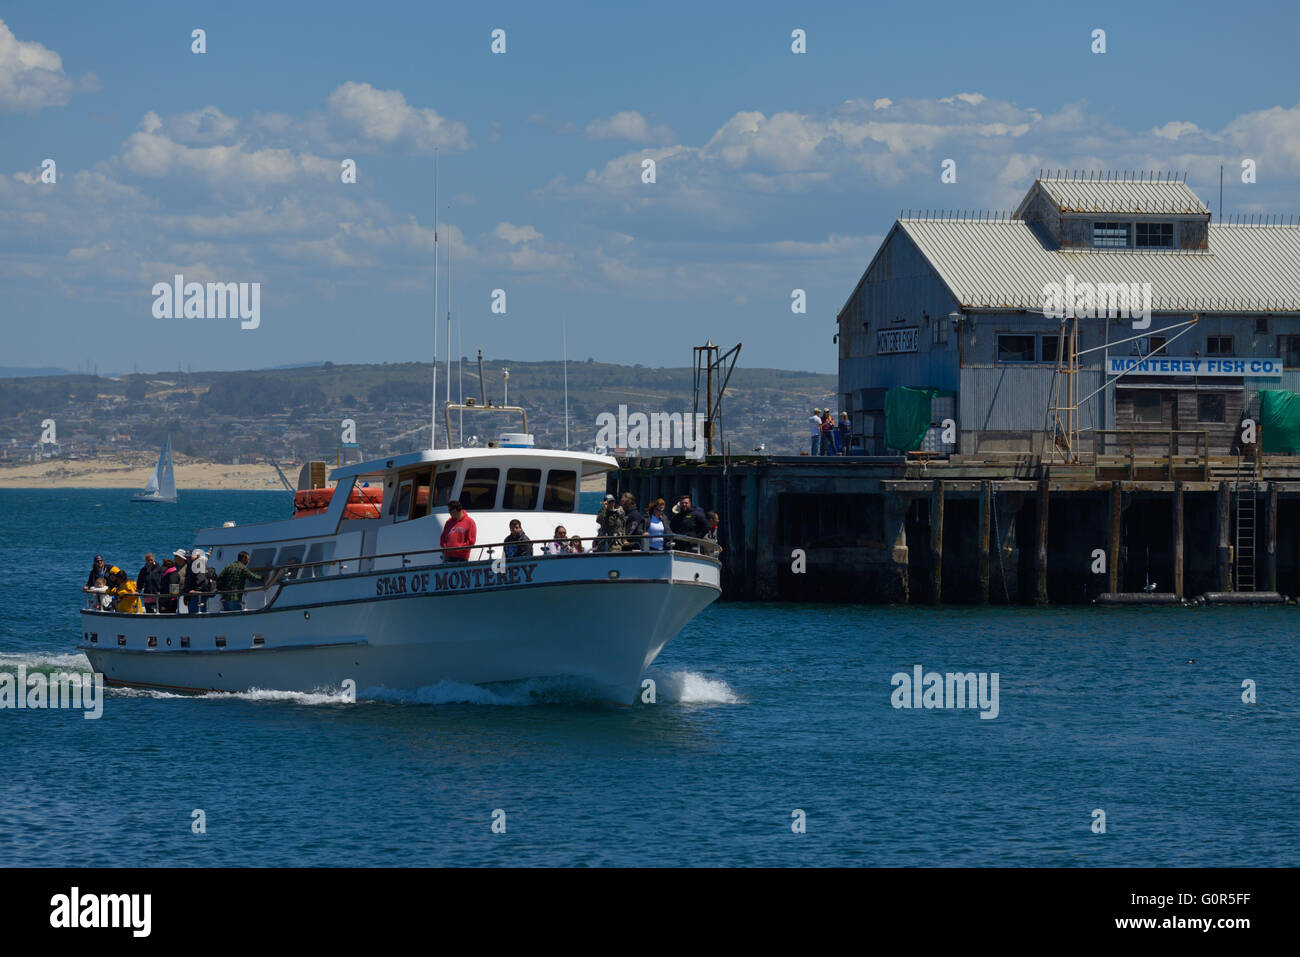 Fisherman's Wharf and Harbor, Monterey Bay CA - Stock Image